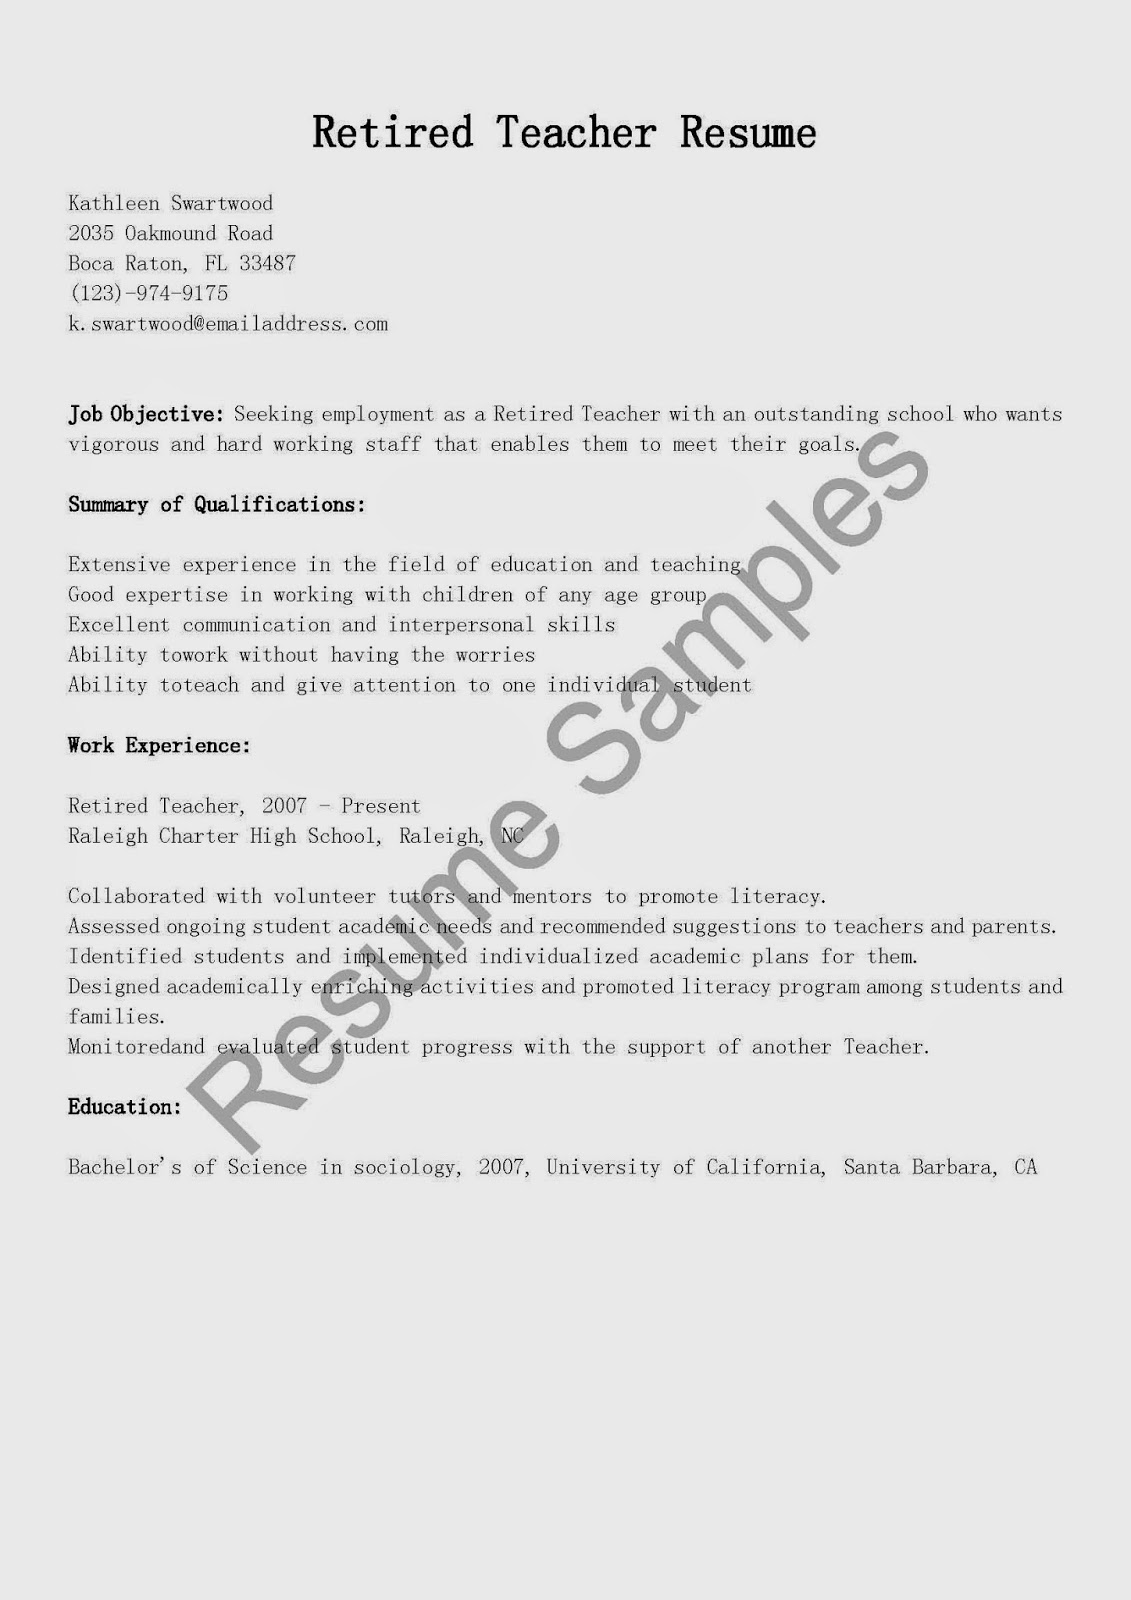 Resume Samples Retired Teacher Resume Sample